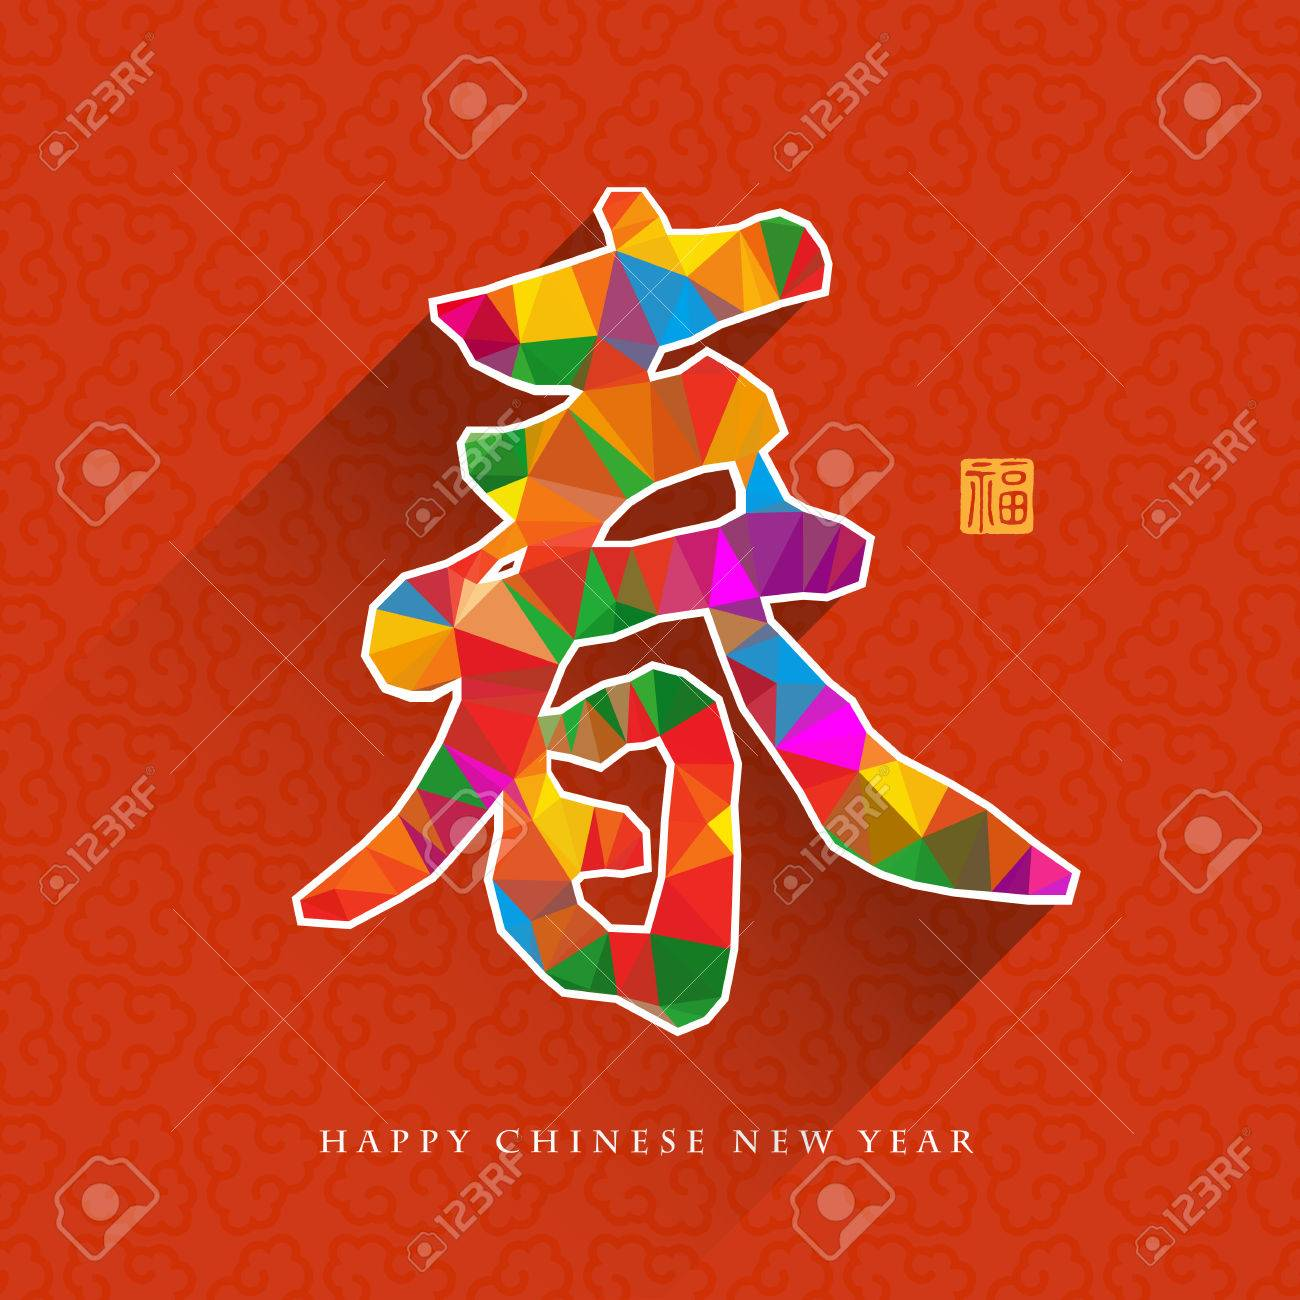 Chinese New Year Traditional Auspicious Symbols Greeting Card